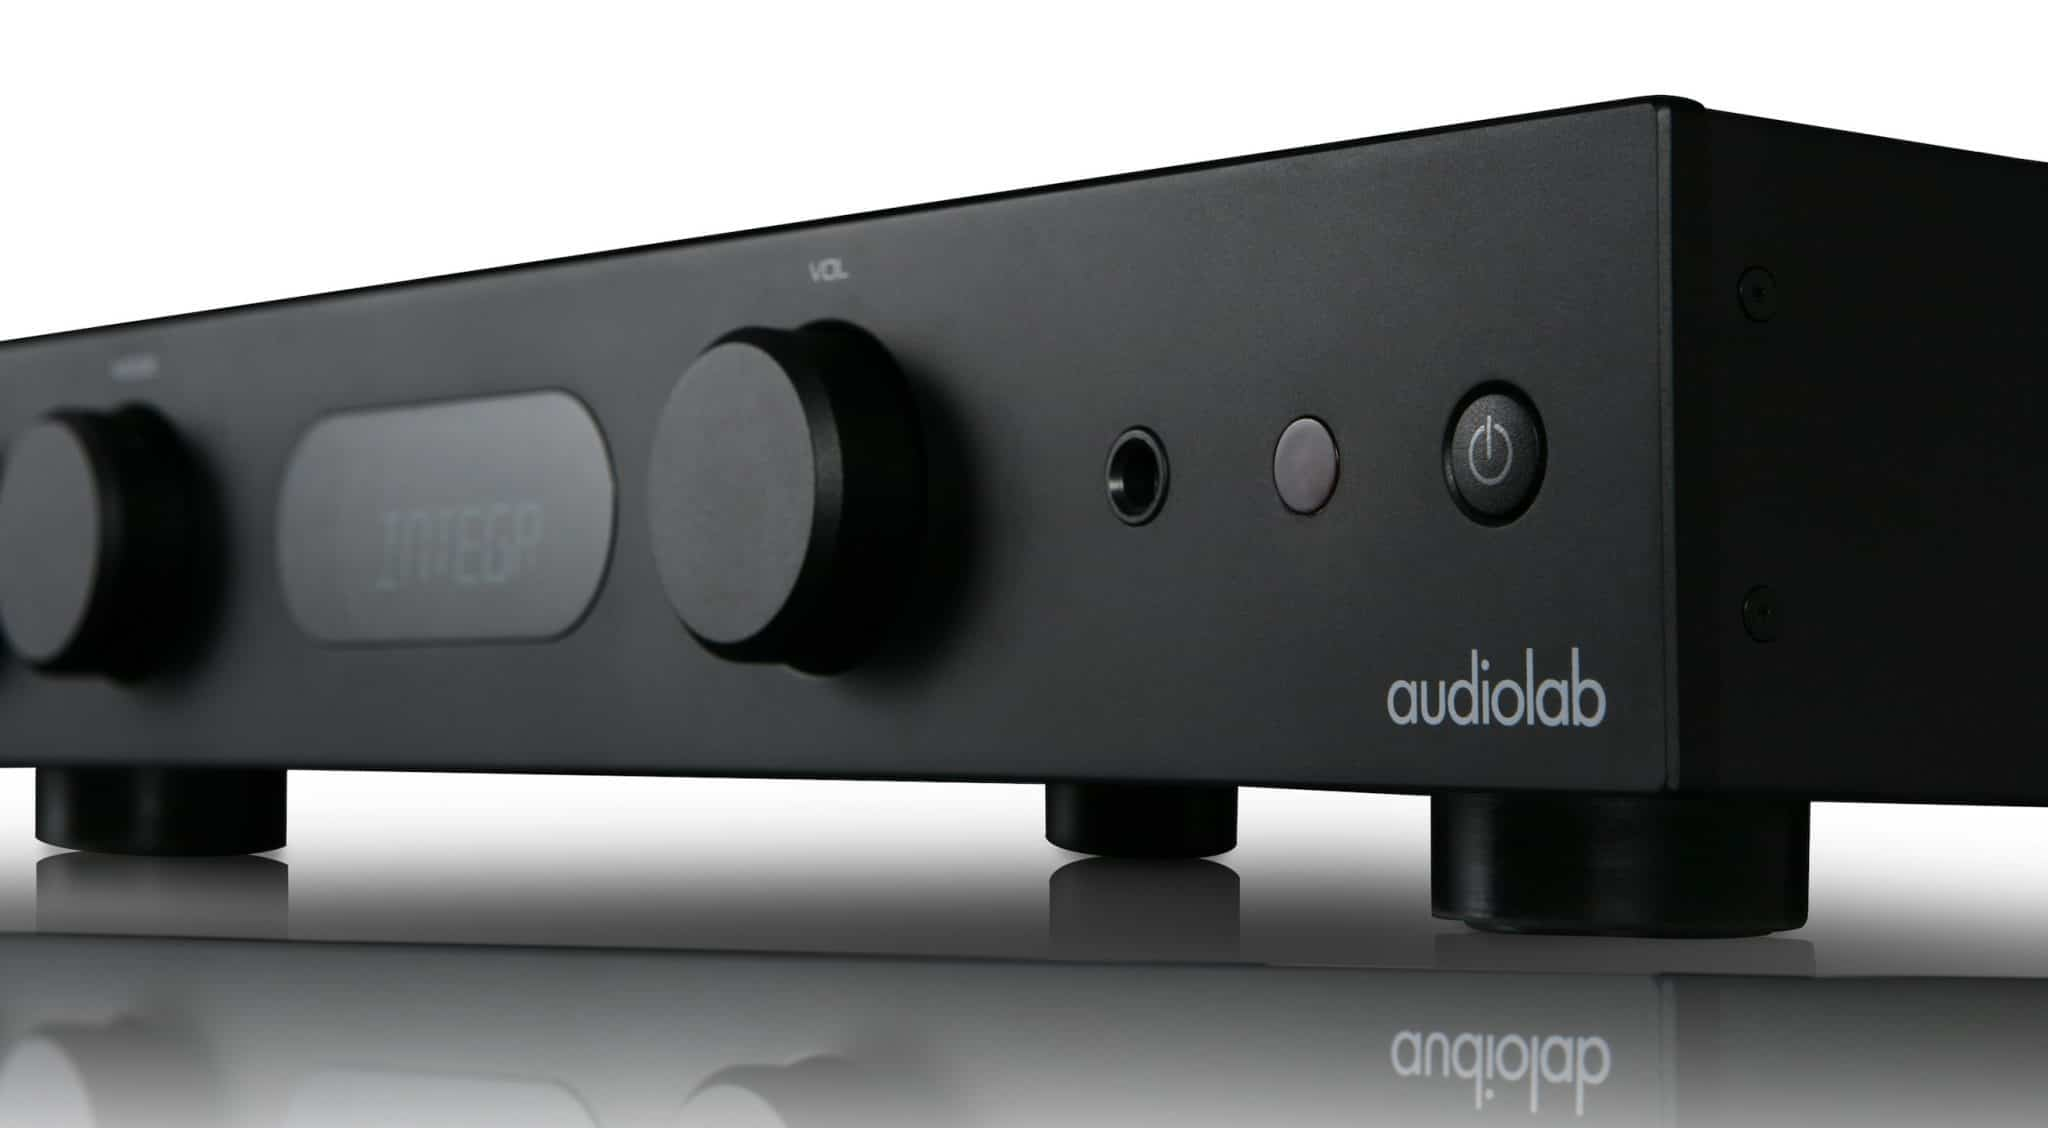 6000A Integrated Amplifier From Audiolab - The Audiophile Man